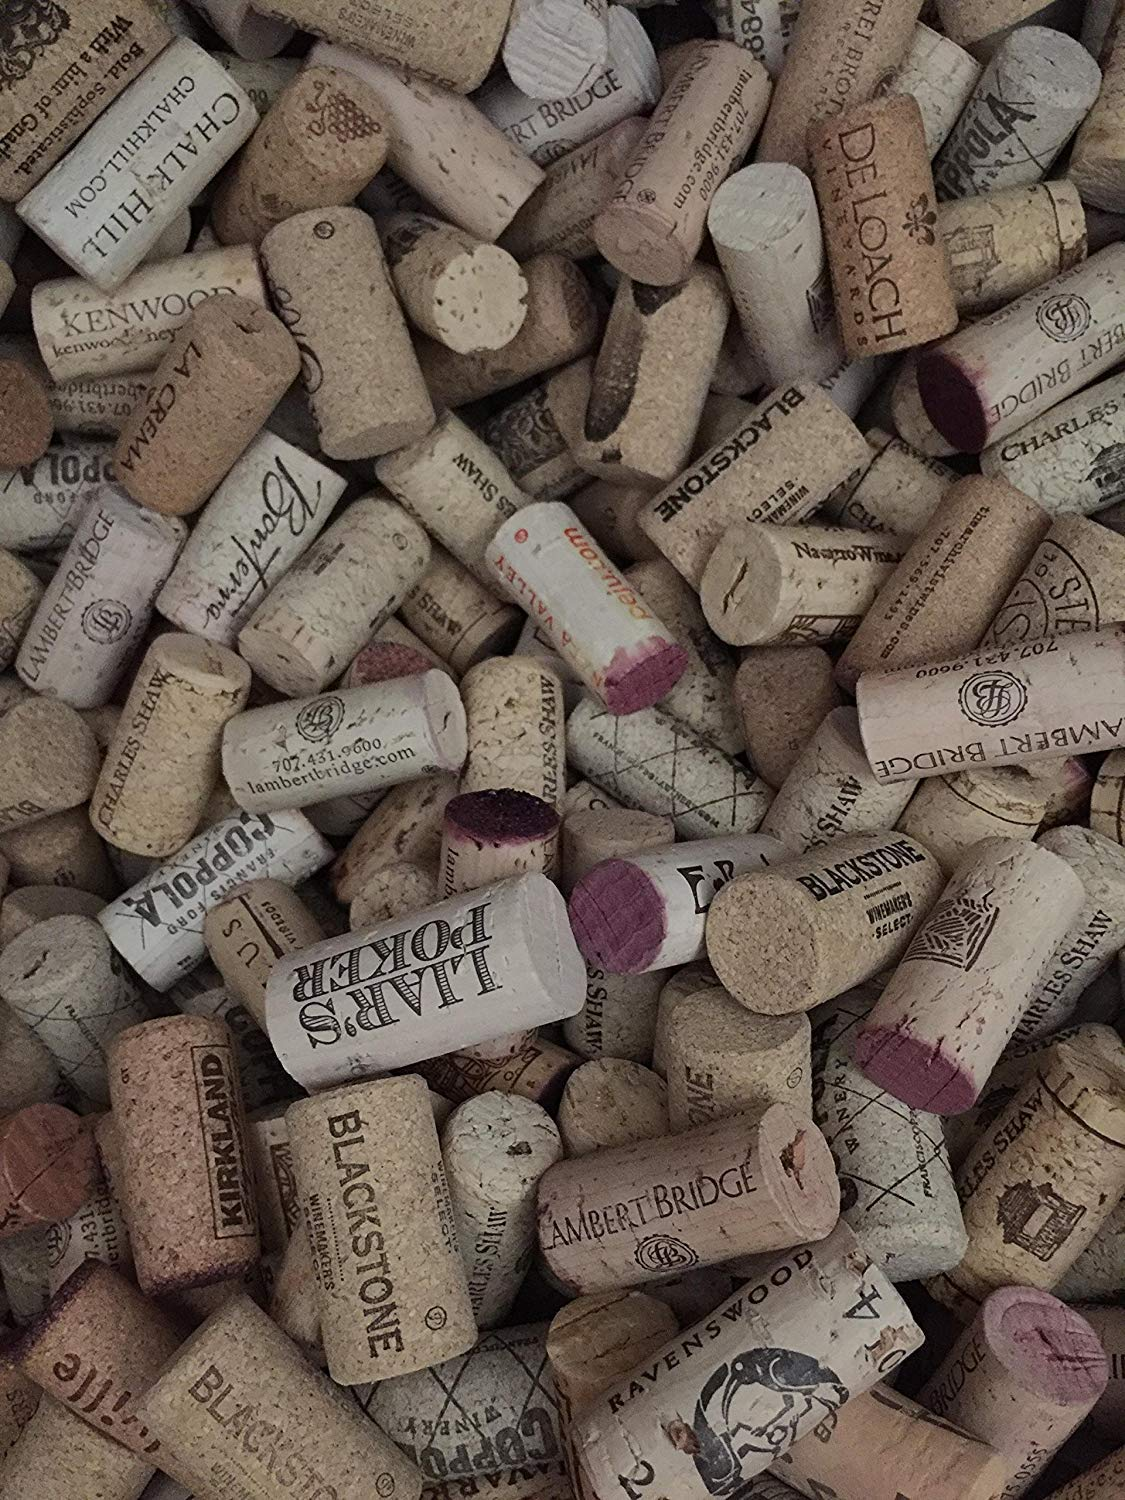 250 Count Premium Recycled Used Corks in Bulk, Natural Wine Corks From Around the Us, Best Variety, Includes Crafts Activity Sheet and Cork Cutting Instructions (250 Count) by Tuuliv (Image #1)